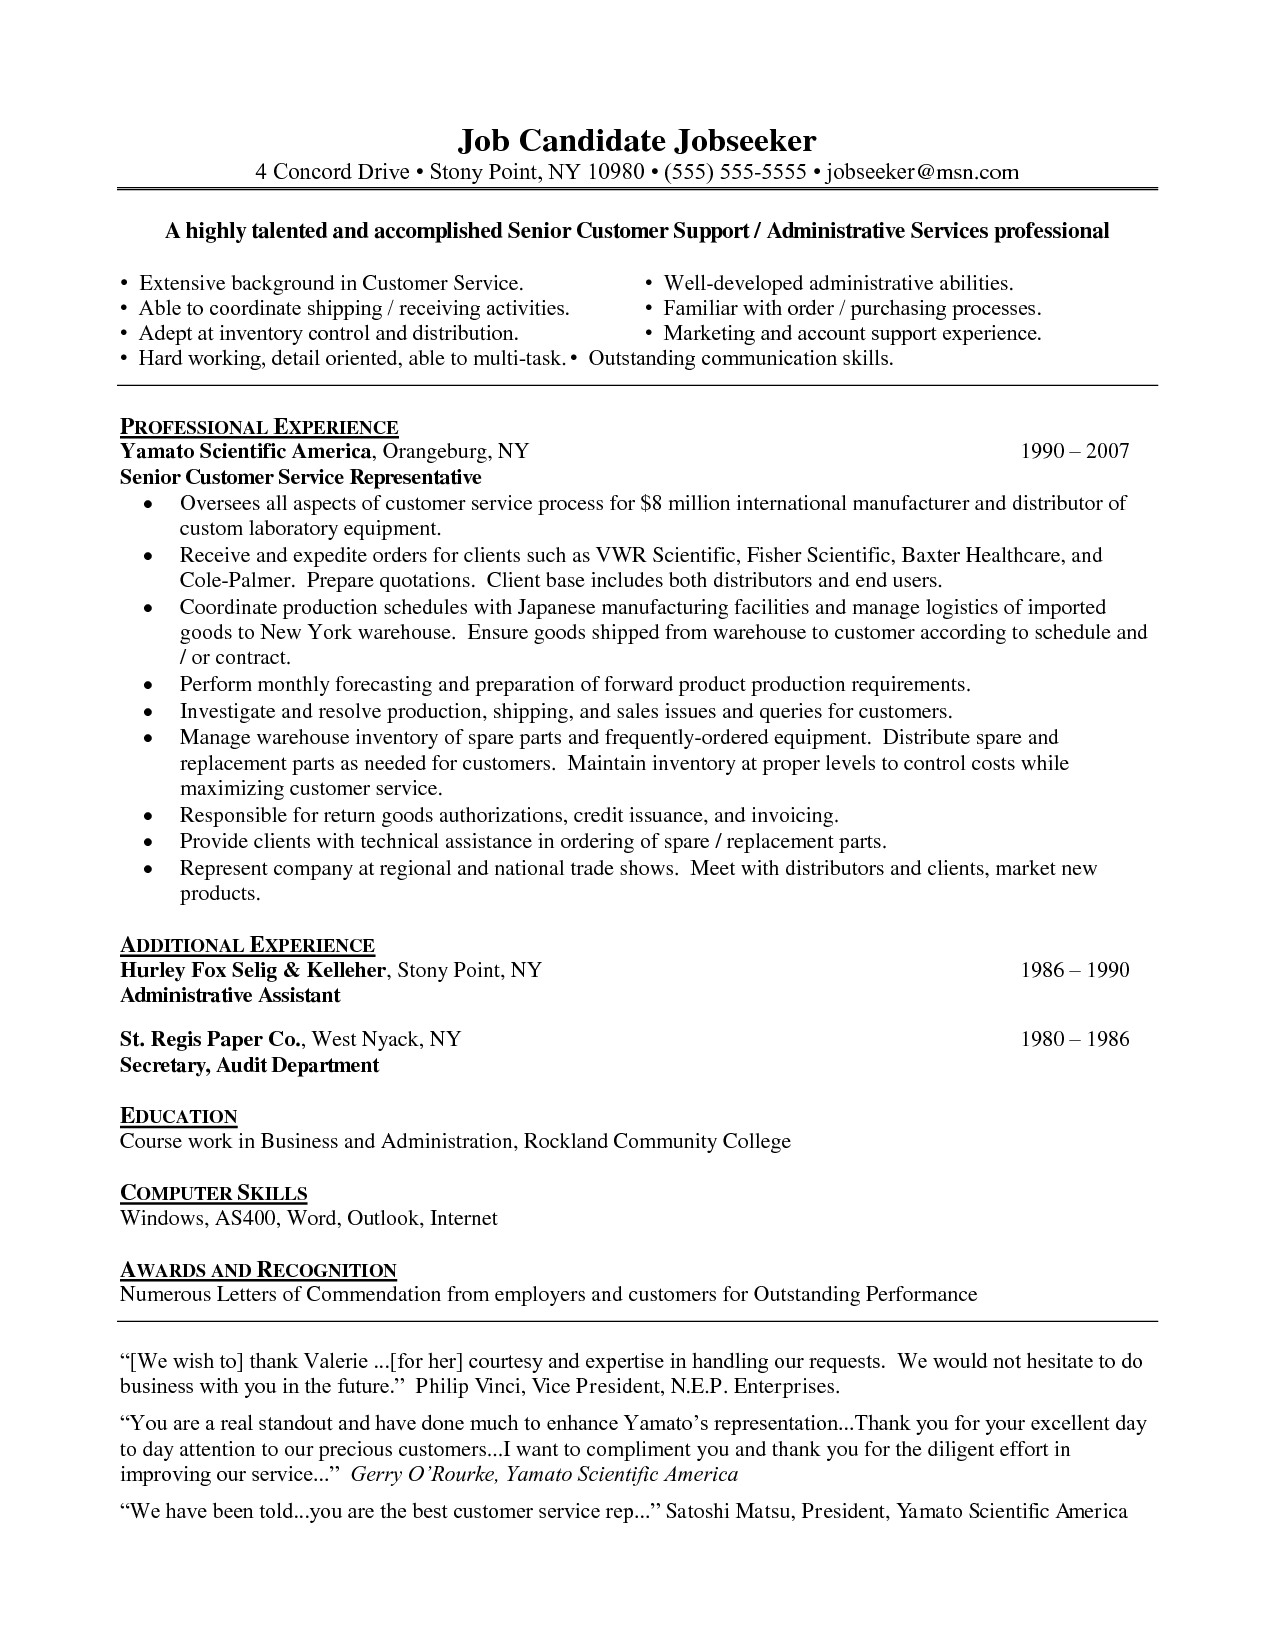 Retail Job Description For Resume Resume Actuary Objective Bookkeeper Professional Entry Level